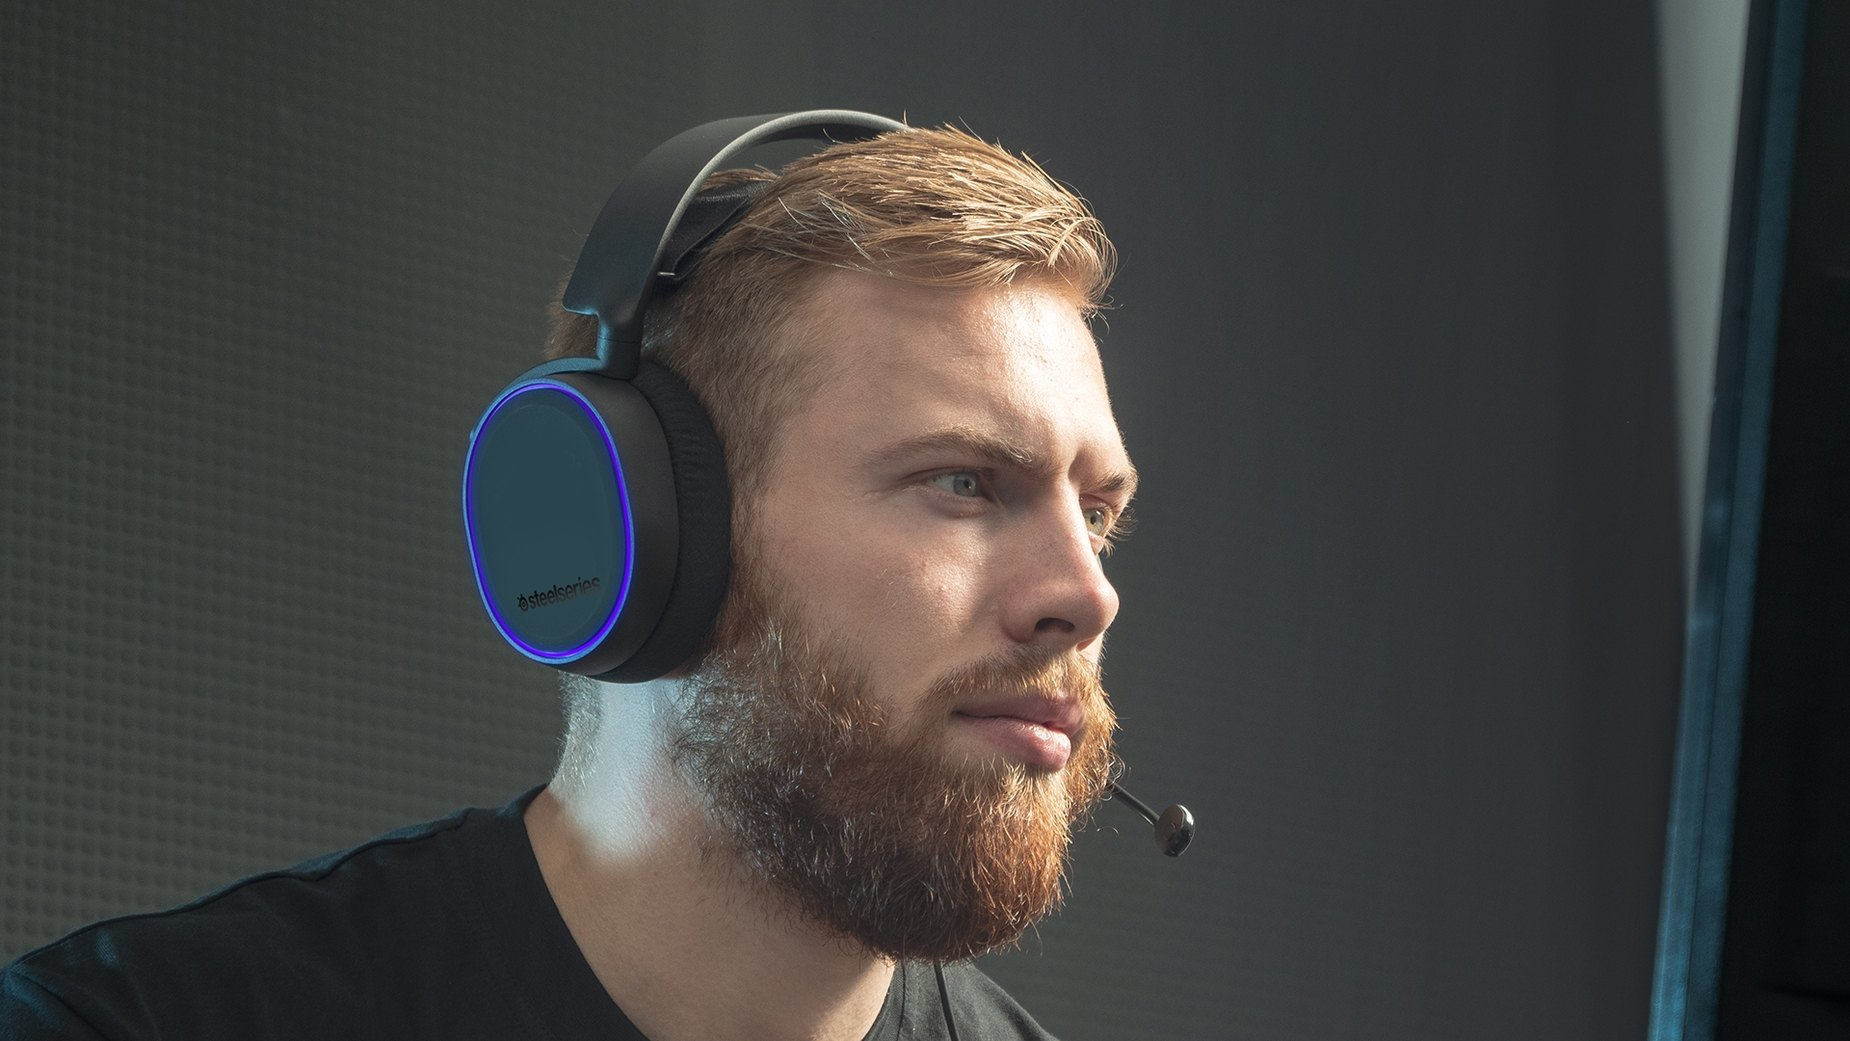 Gamer wearing Arctis 5 headset with RGB illumination around the ear cup